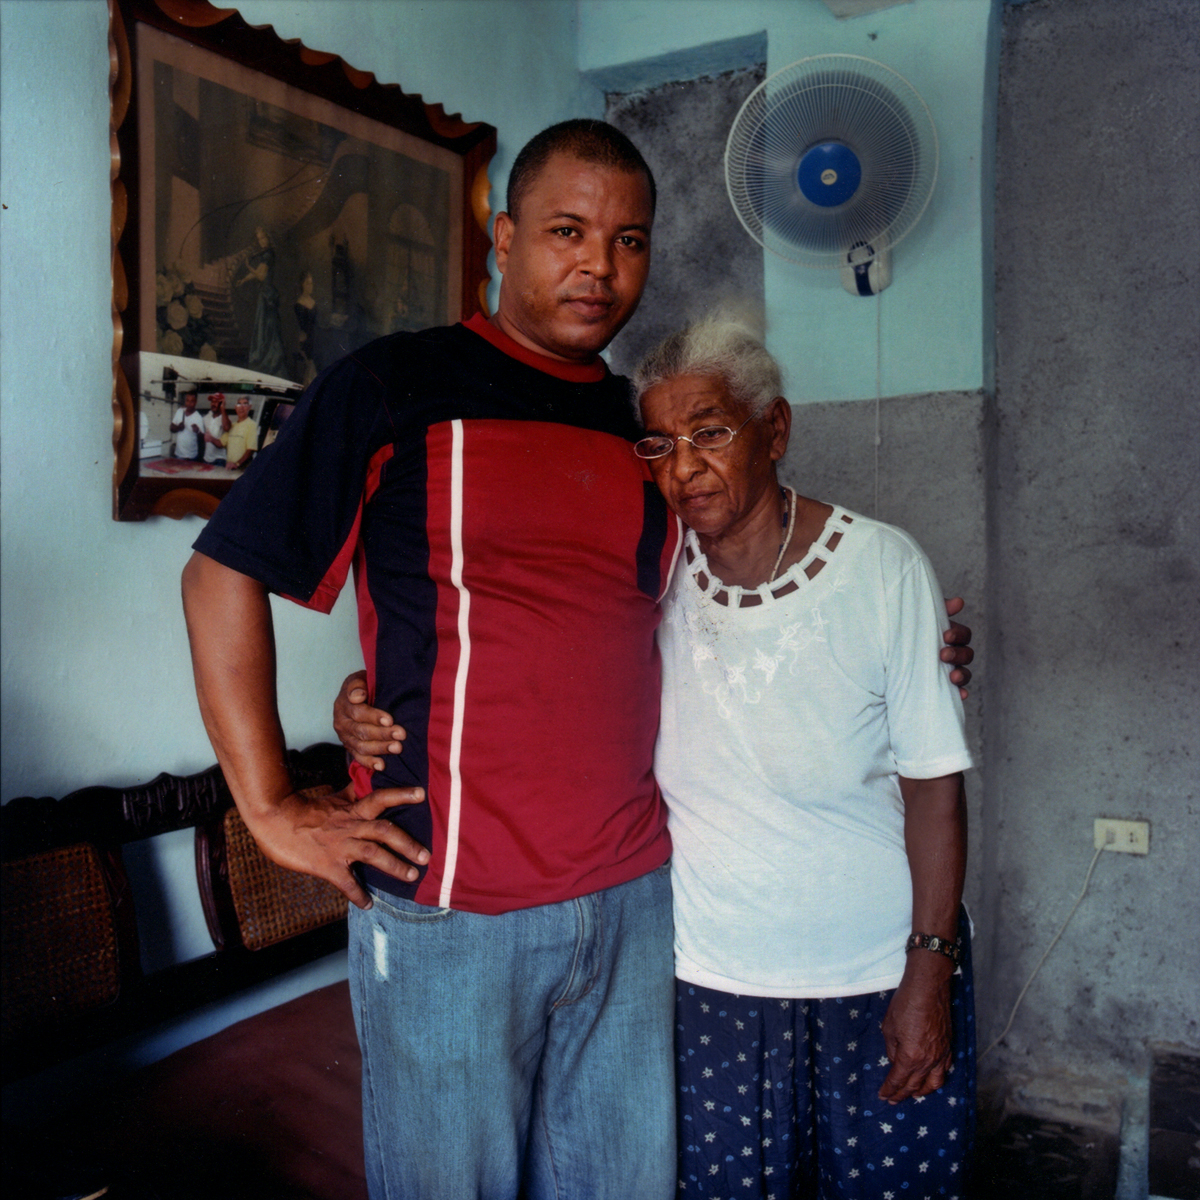 Lorenzo's son, embraces his mother. Havana, Cuba